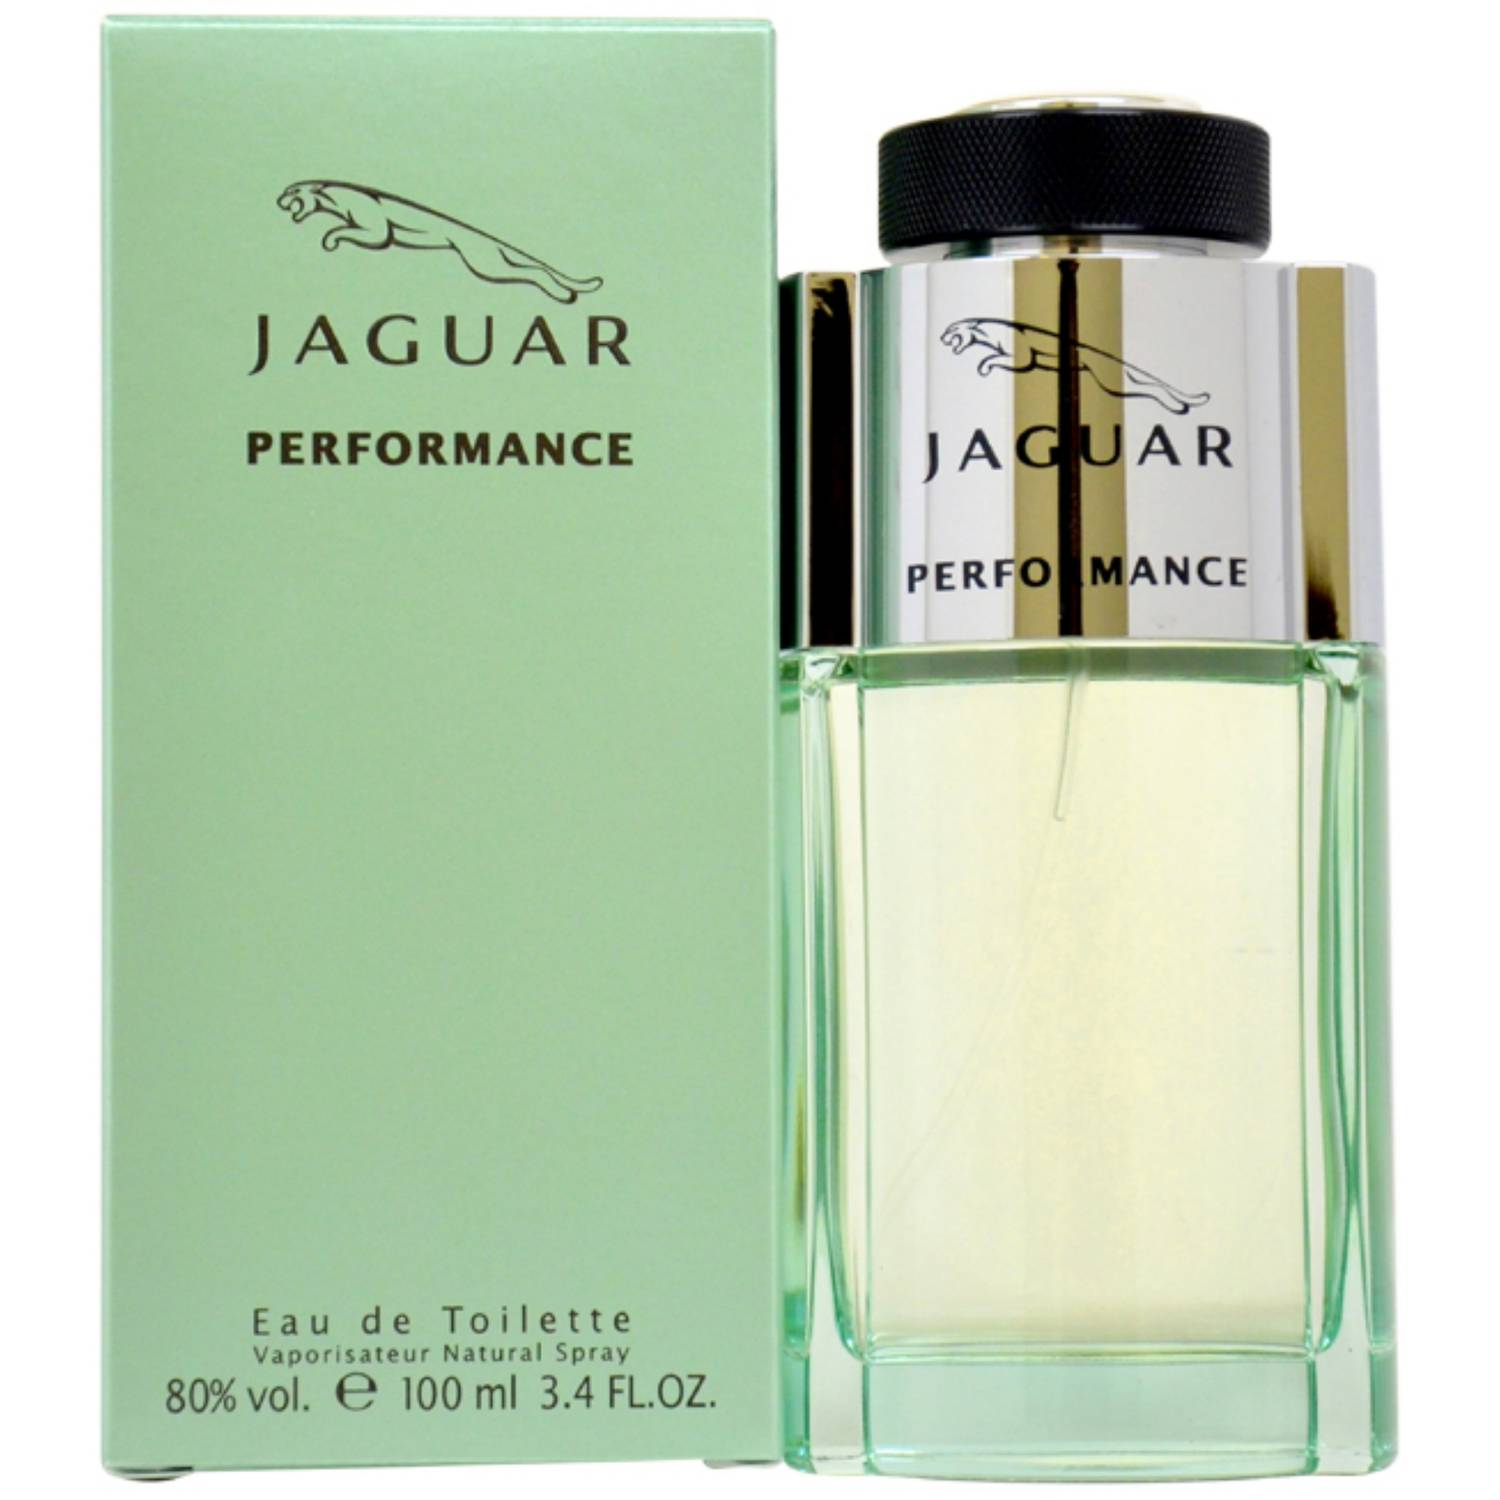 Jaguar Jaguar Performance EDT Spray, 3.4 fl oz